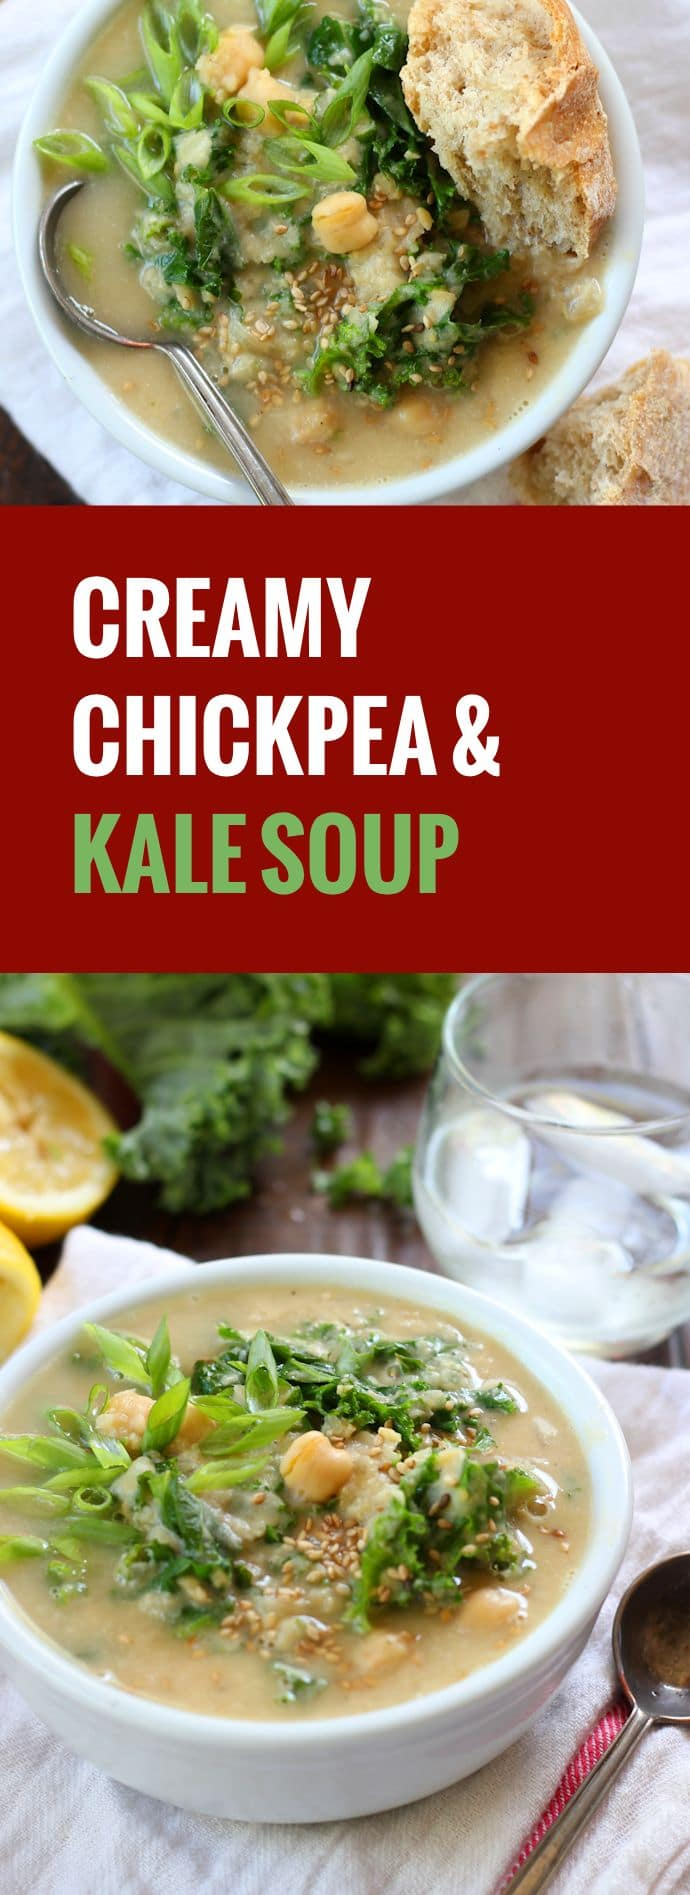 chickpea-kale-soup-long